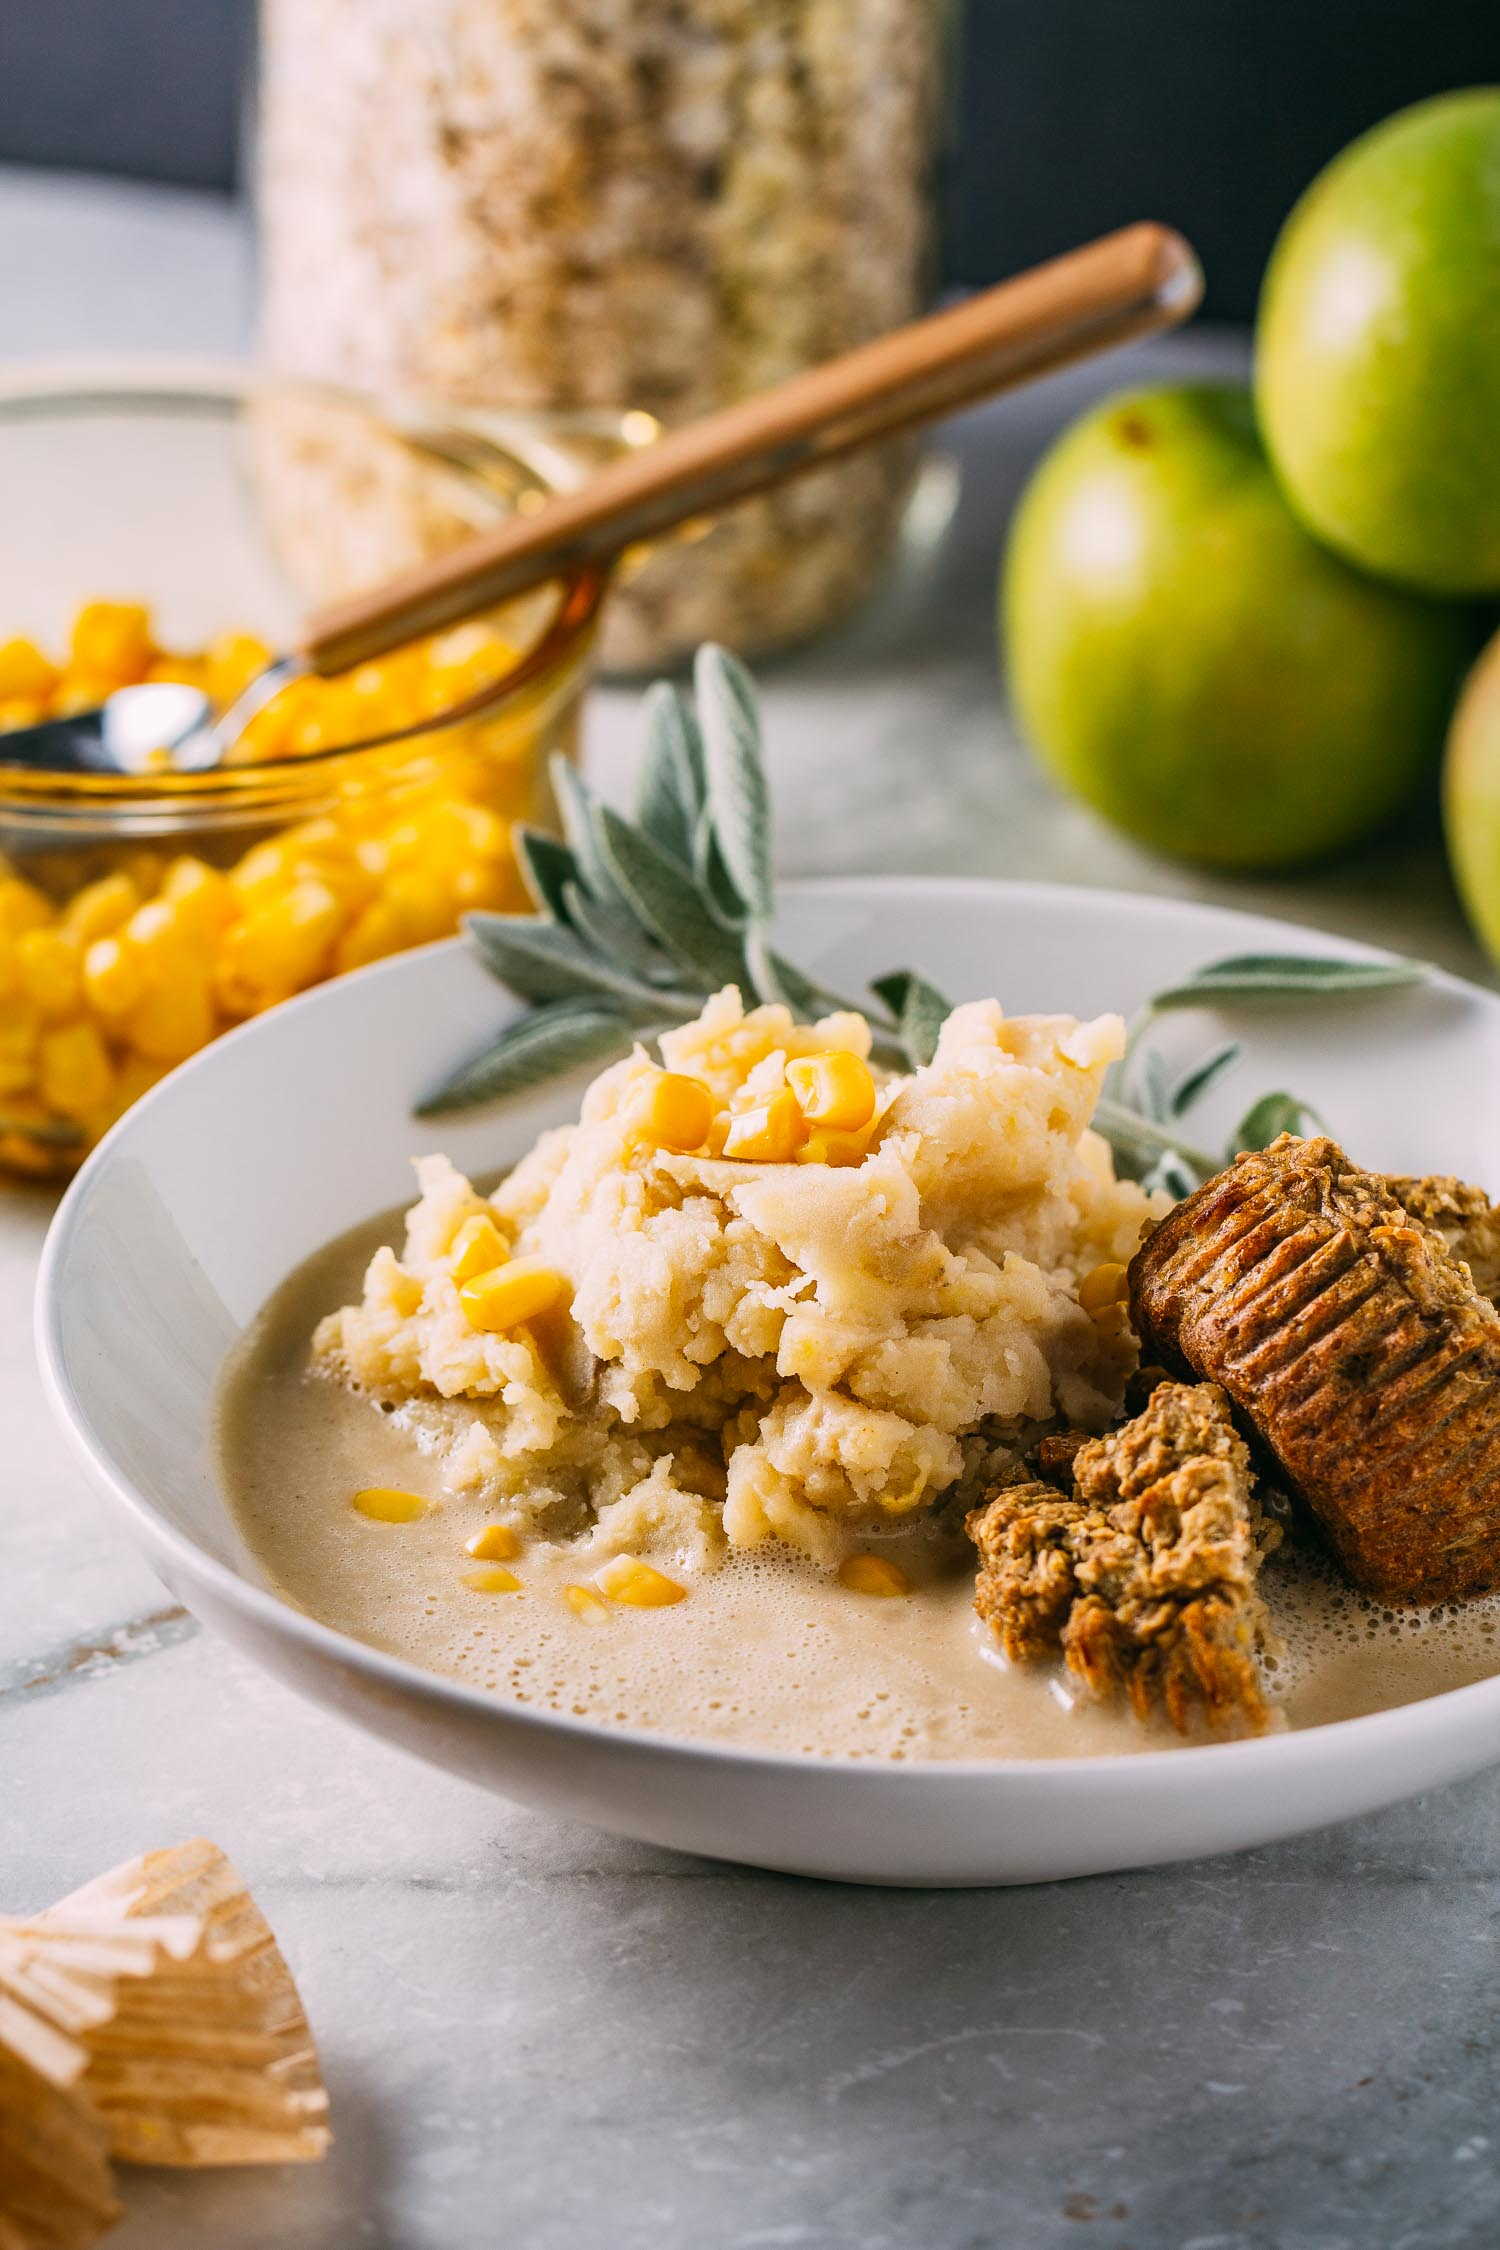 Healthy Mashed Potatoes & Gravy with Cannellini Bean Cream #mashed #potatoes #cannellini #beans #vegan #vegetarian #plant-based #wfpb #wfpbno #gluten-free #gravy #sauce #holidays #Thanksgiving #Christmas #comfort #sage #food #recipes #recipe #healthy #low-fat #fat-free #easy #simple #southern #homemade #bowl #bowls #fall #winter